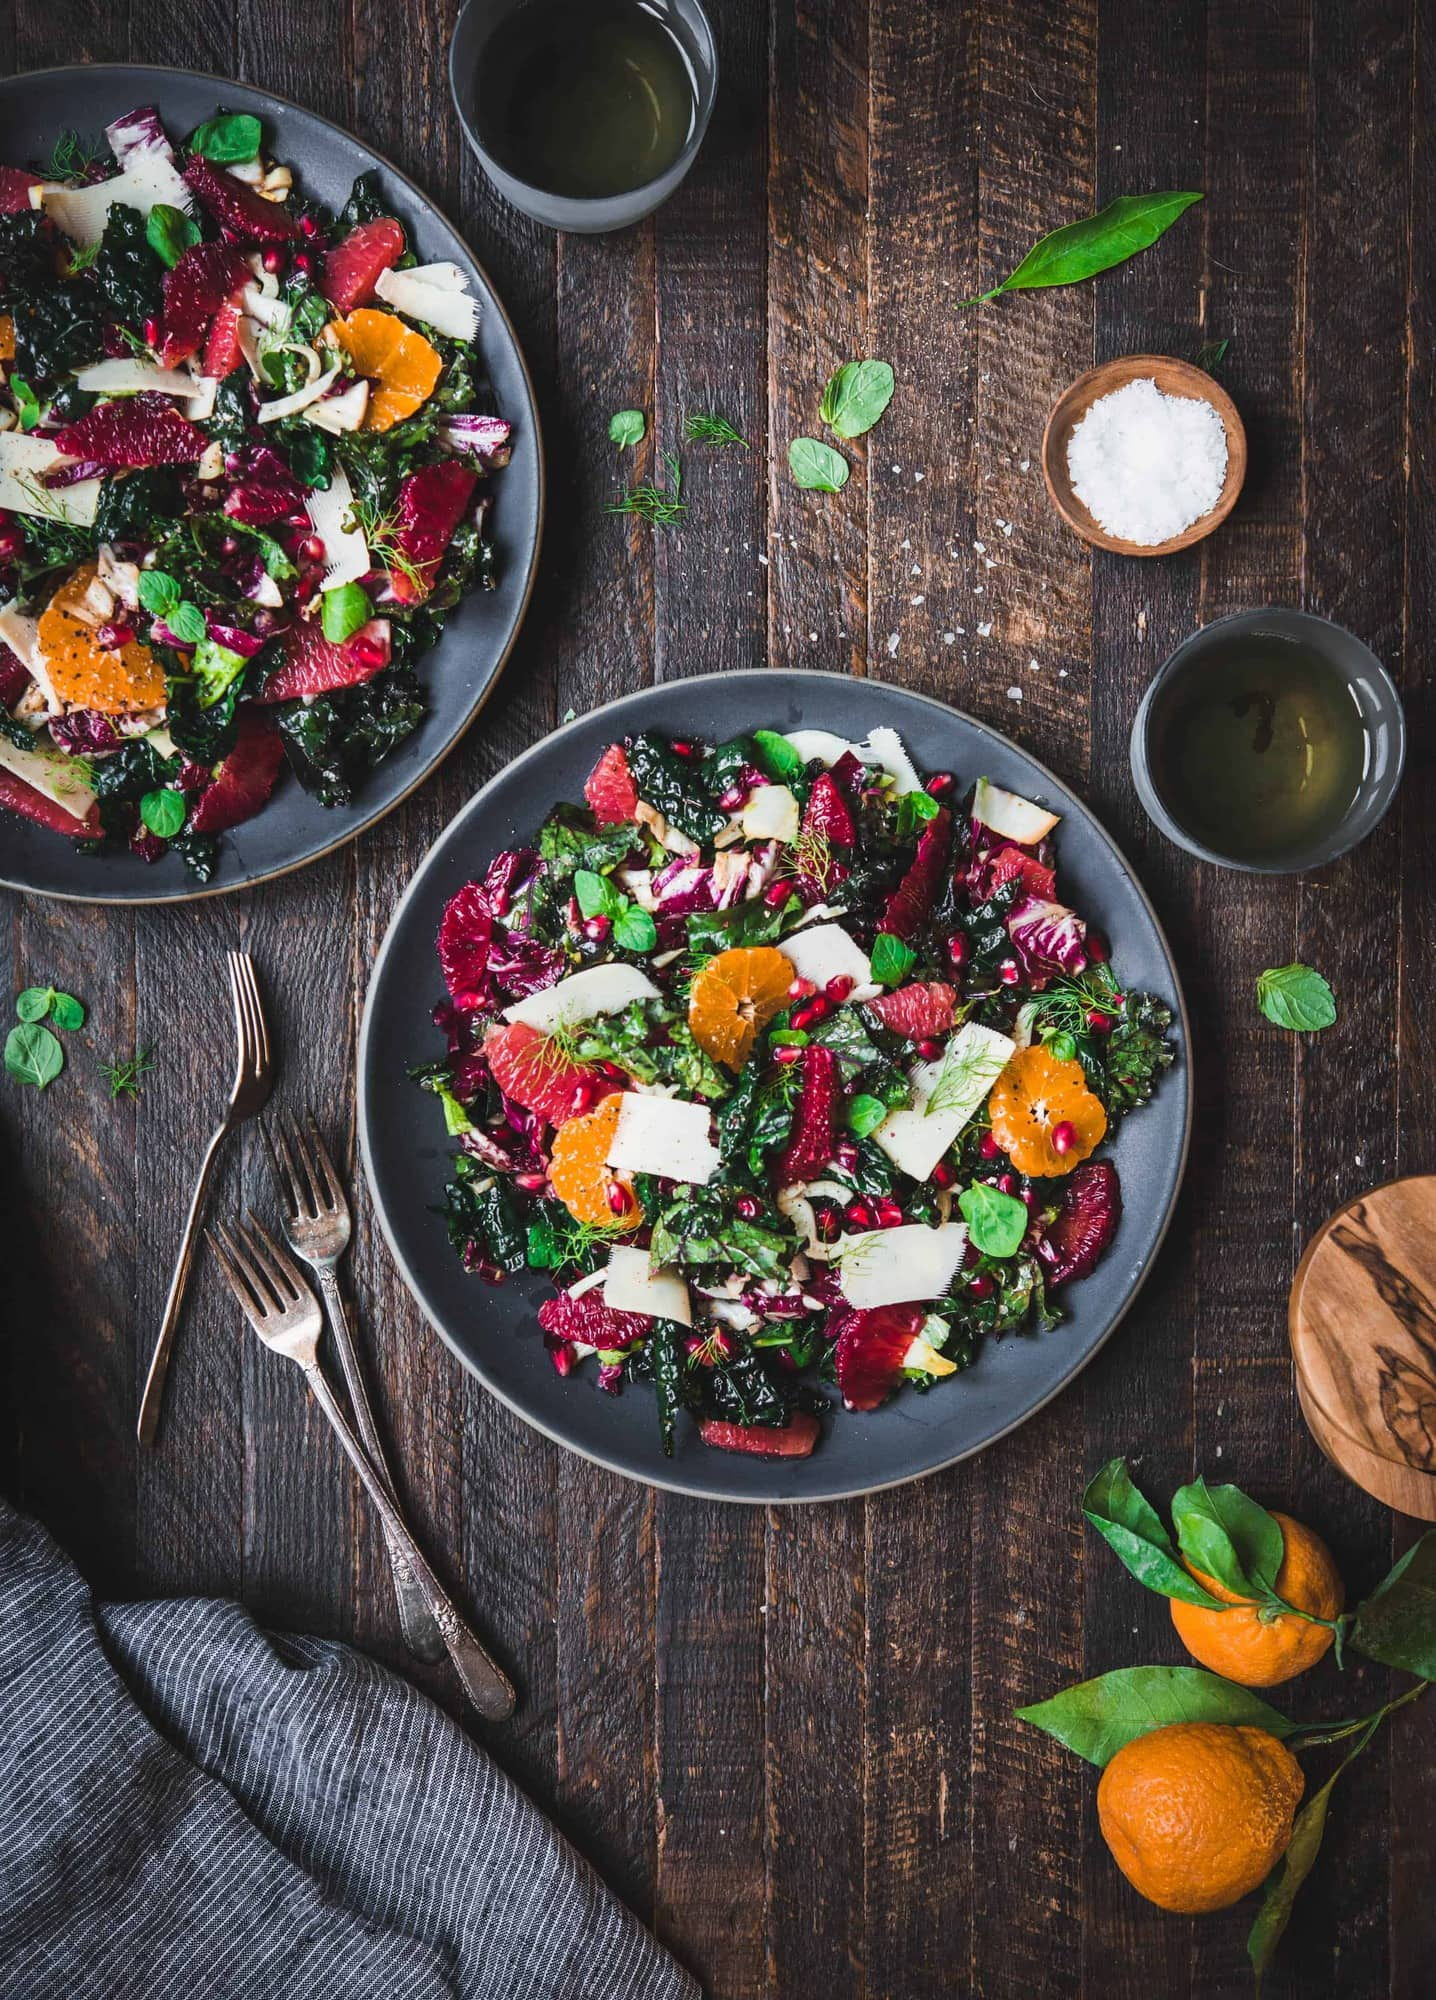 Overhead shot of beautiful winter greens and citrus salad on rustic wood background